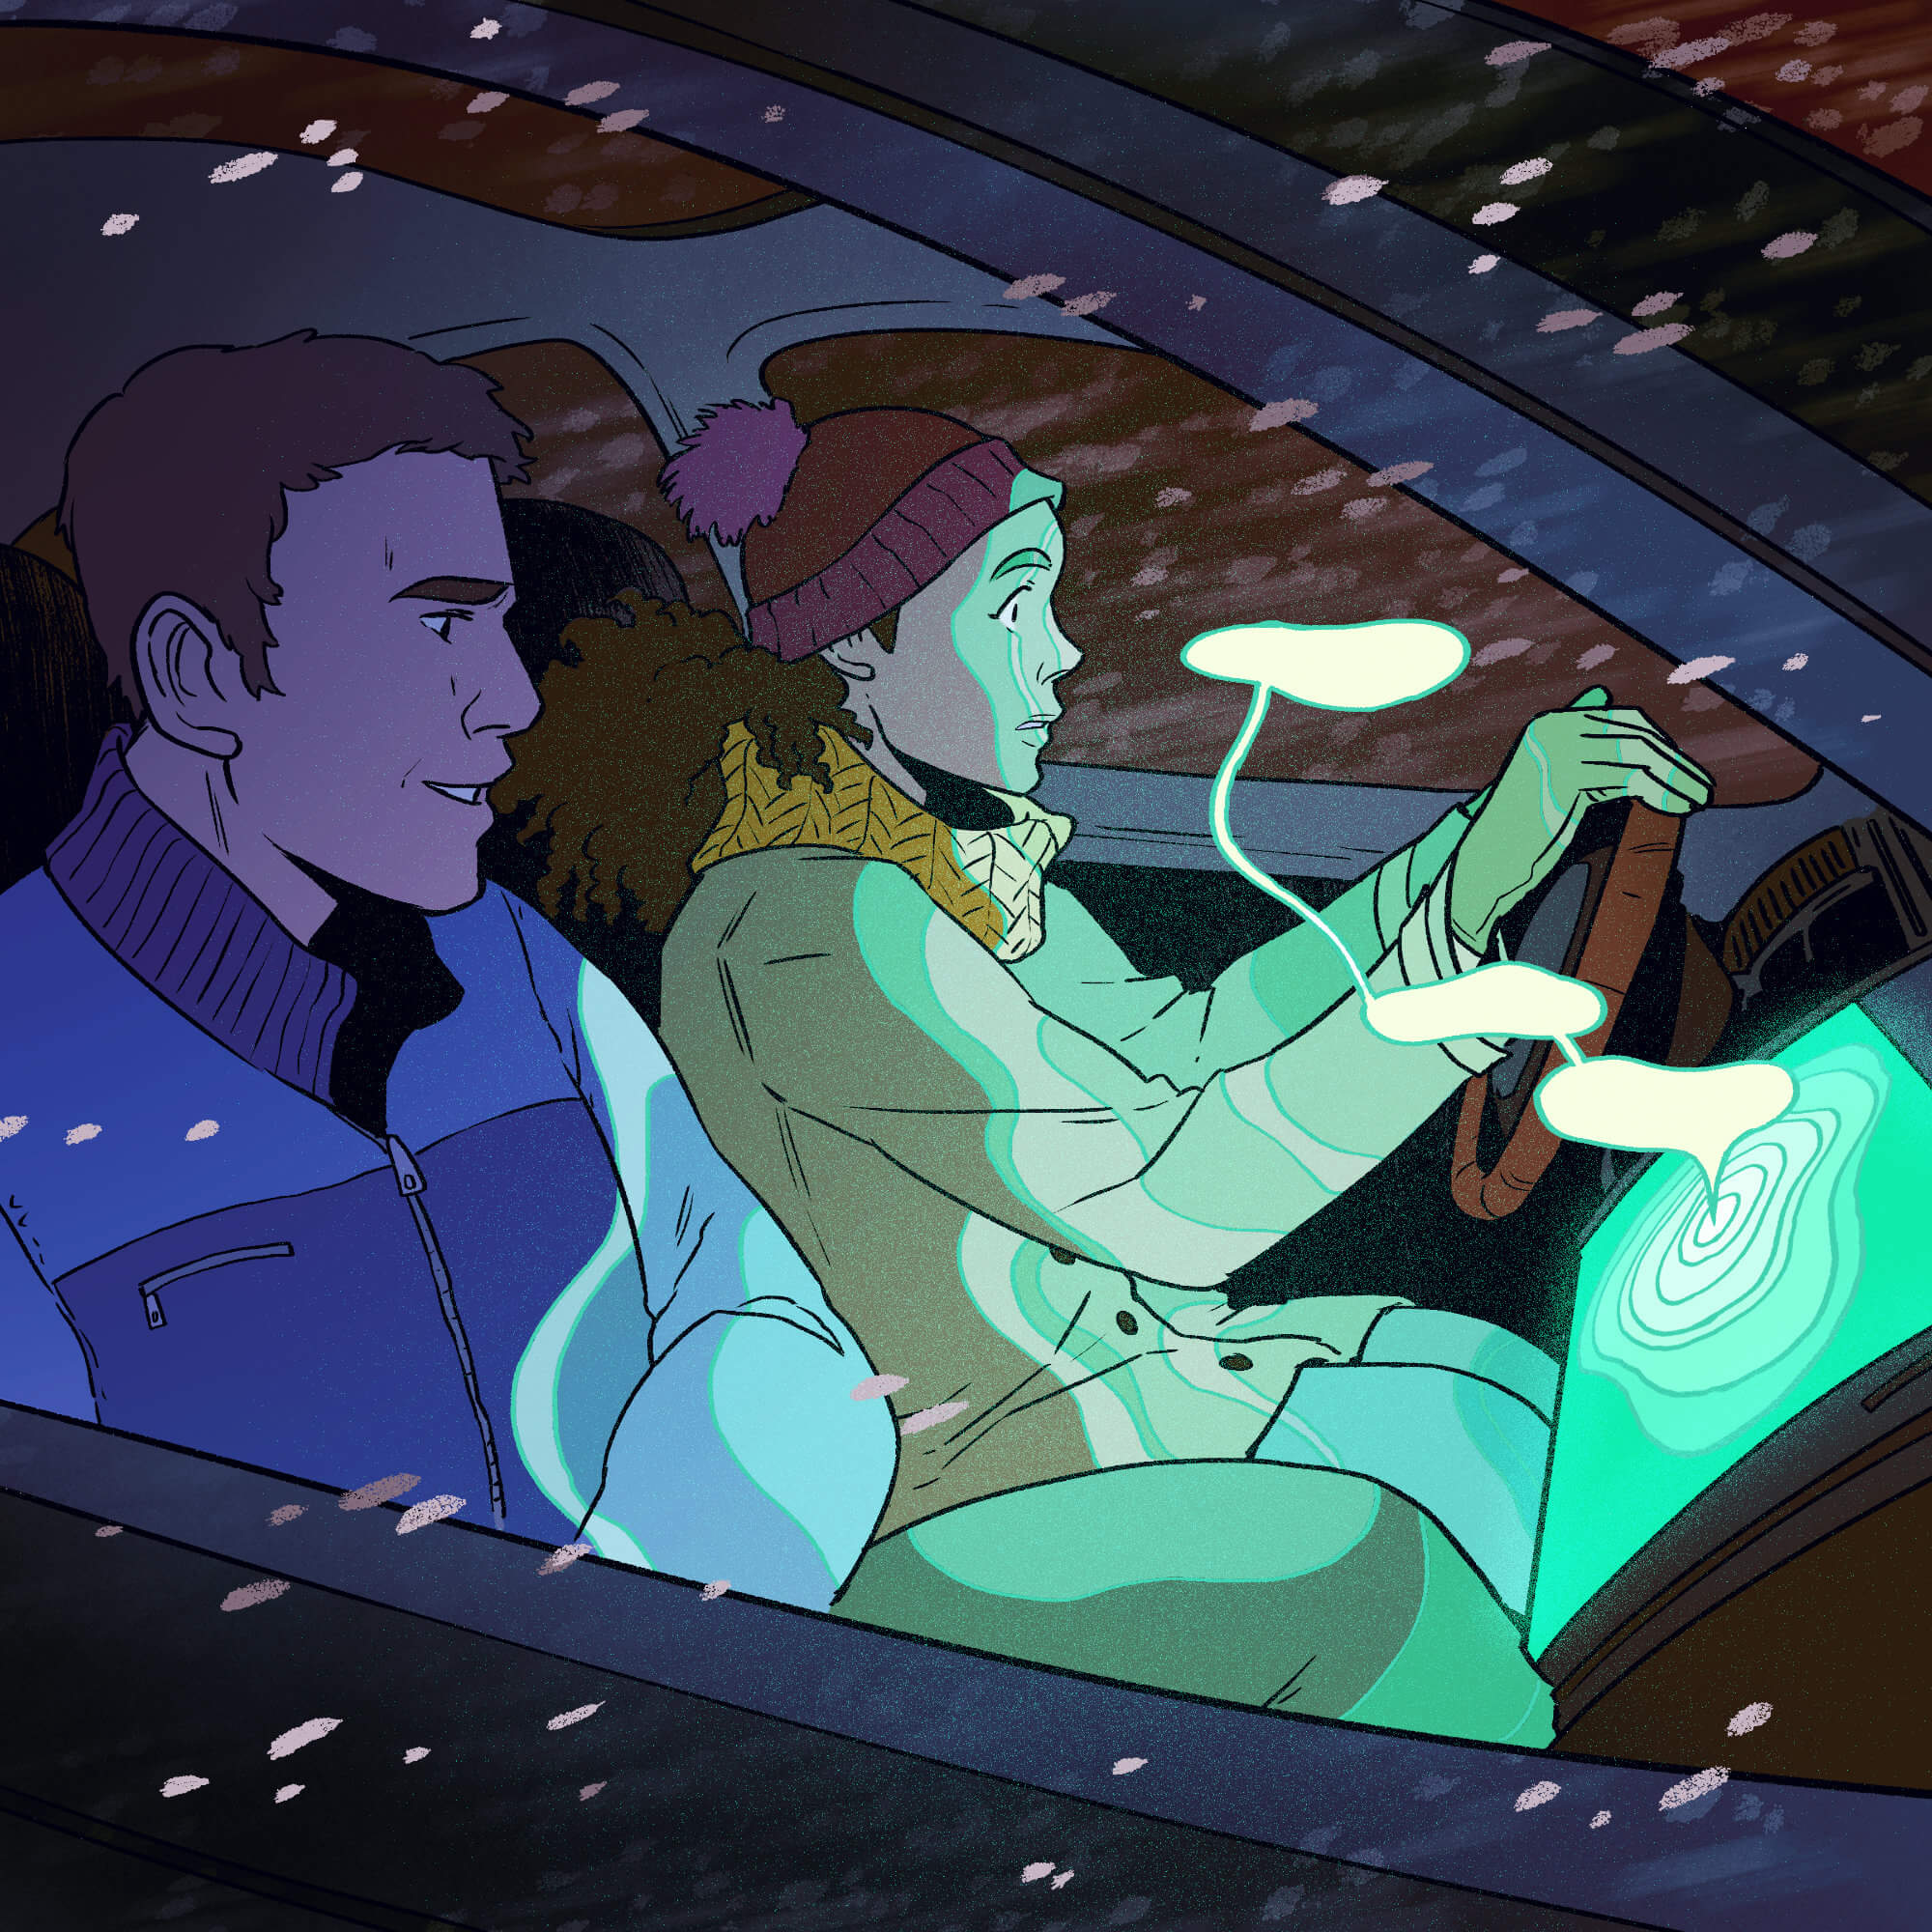 An illustration of a woman driving a car during a storm with a male passenger, while the dashboard bathes them in green light.